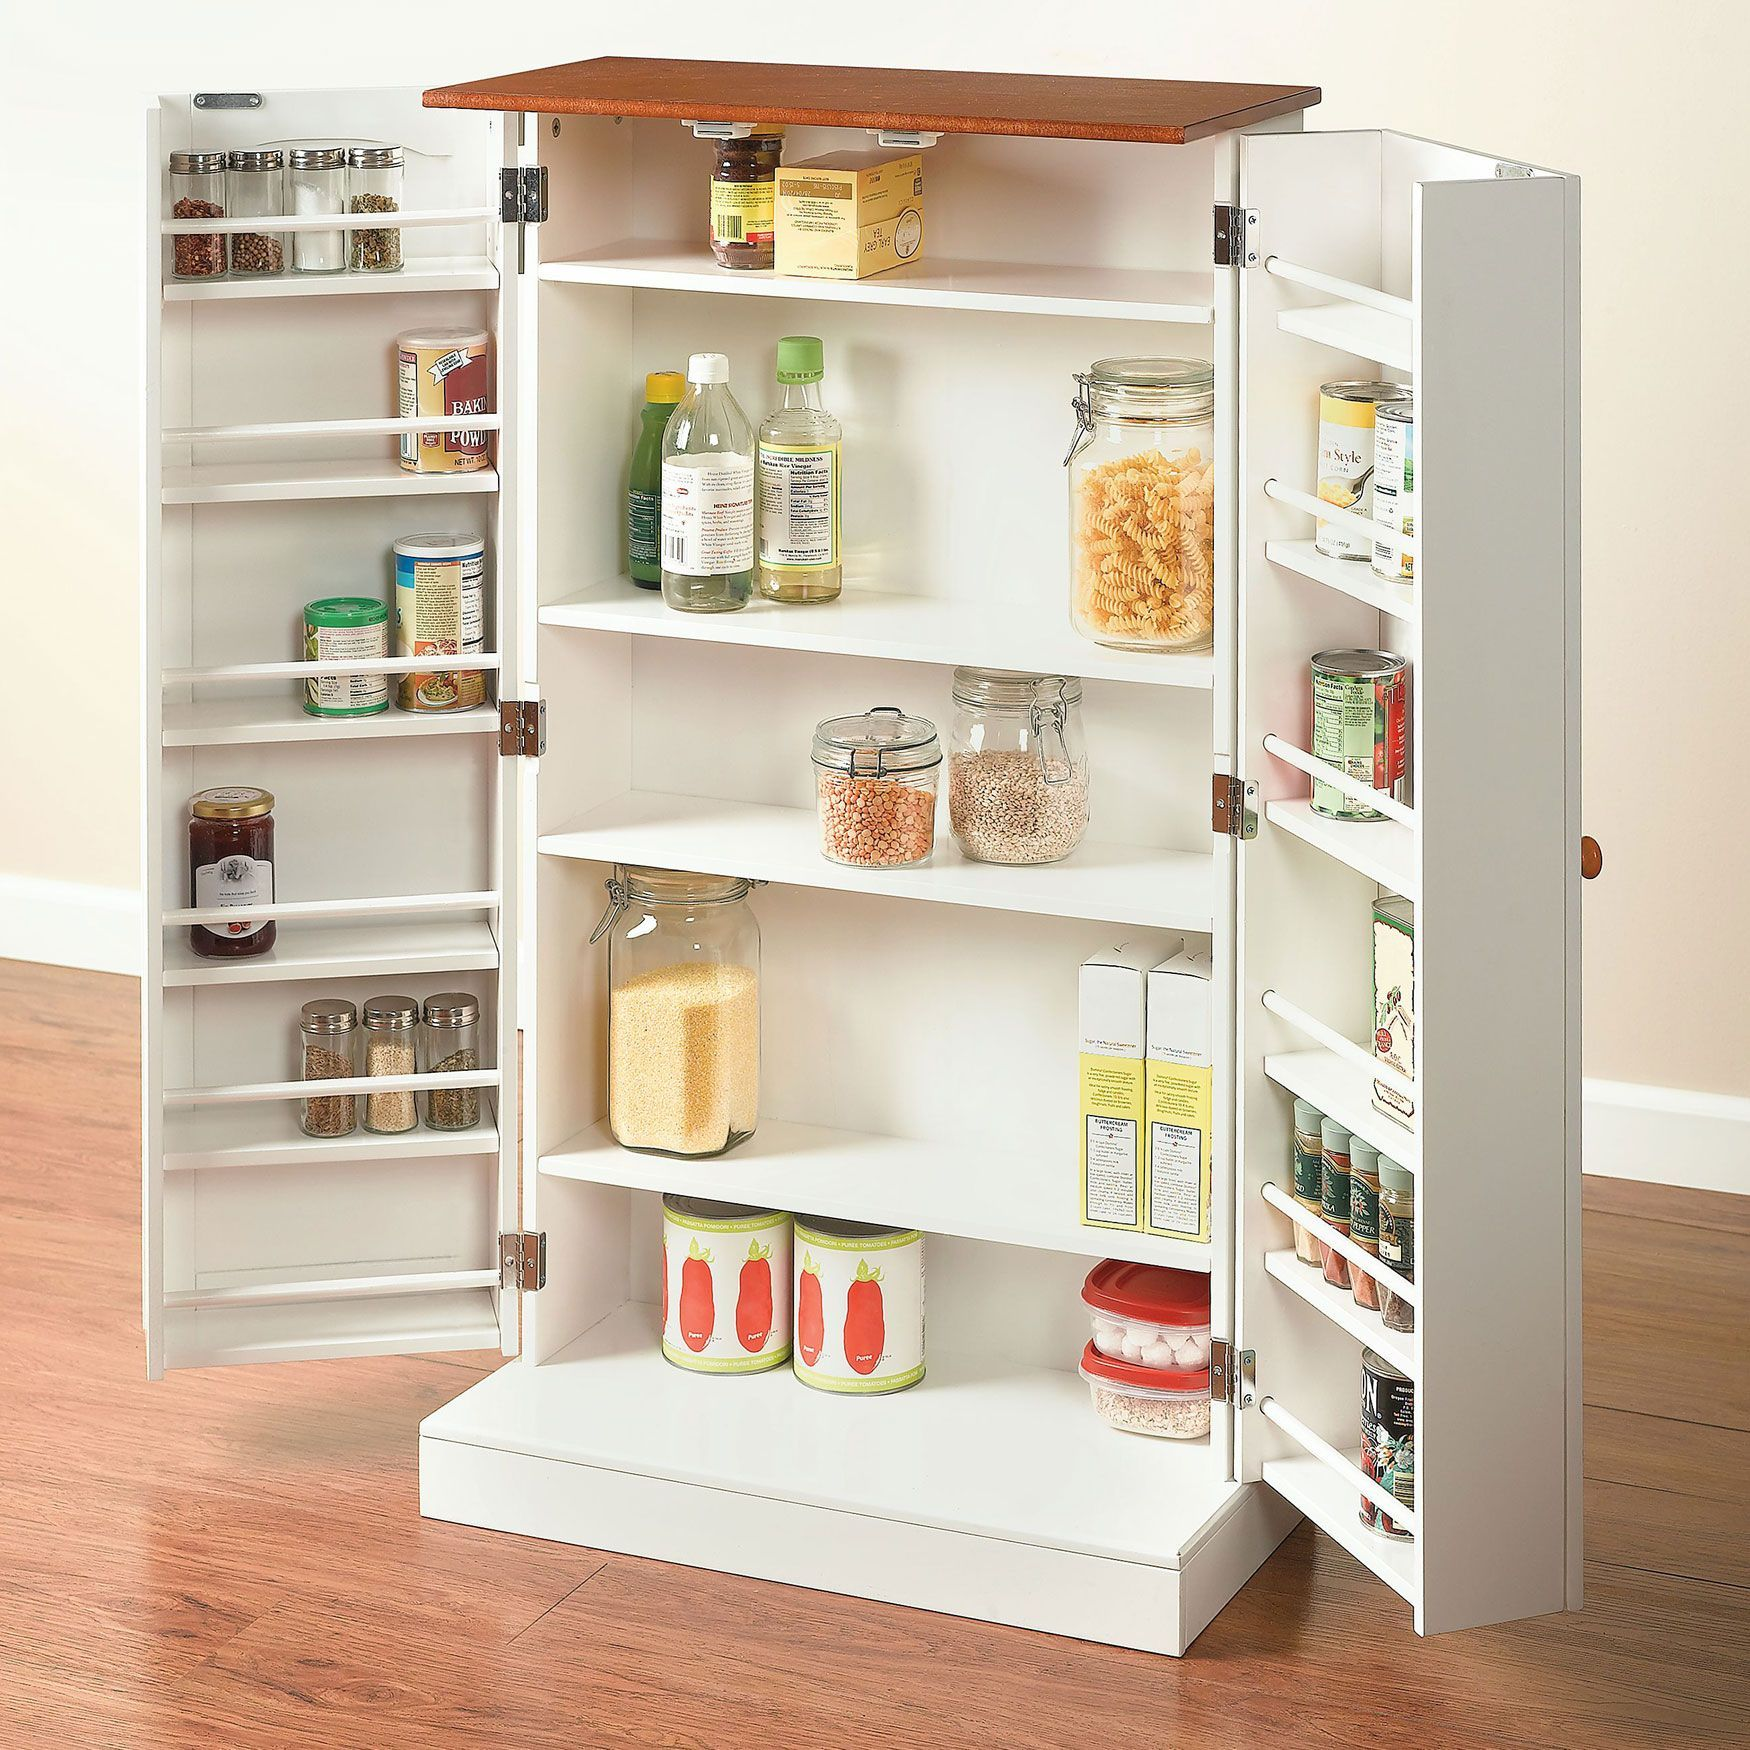 Pantry storage for small spaces tiny space pinterest - Armarios espacios pequenos ...